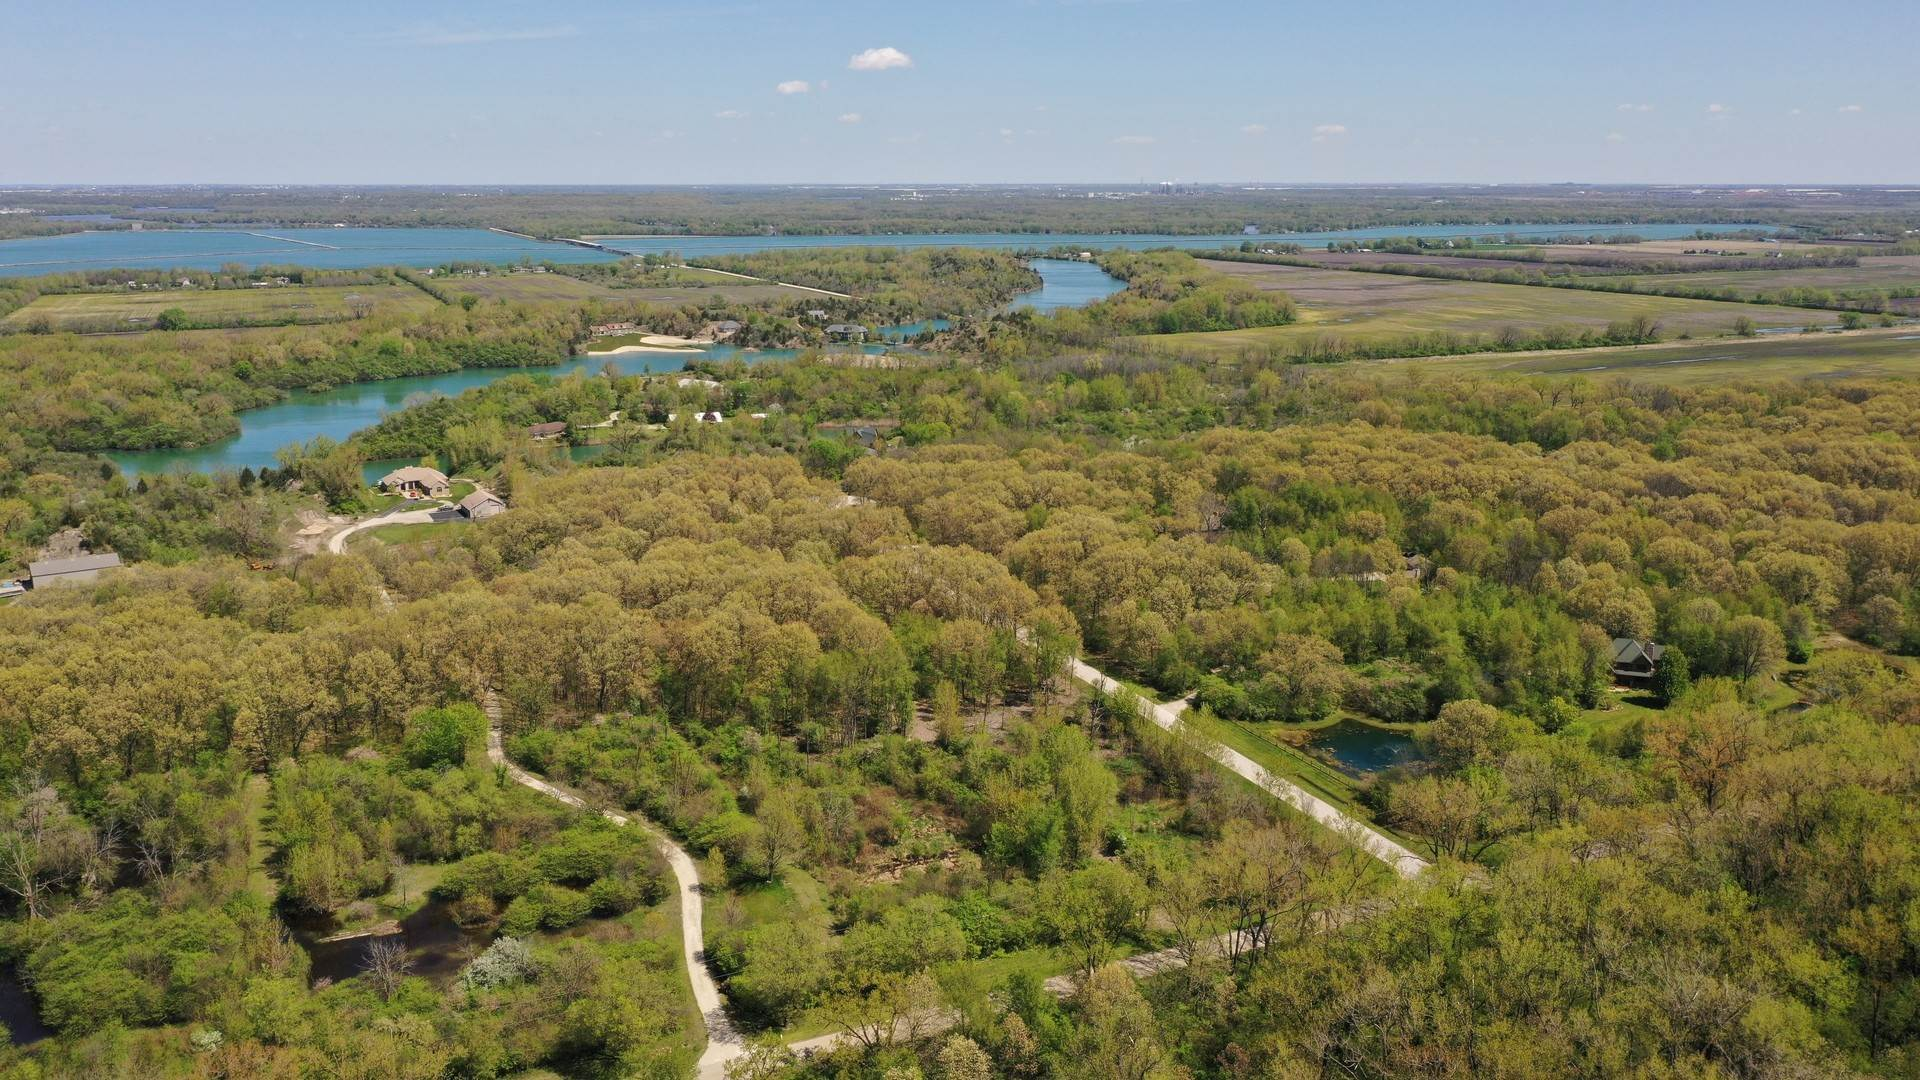 Land for Sale at Lot 3 Duck Pond Rd/Geri Lane Coal City, Illinois 60416 United States